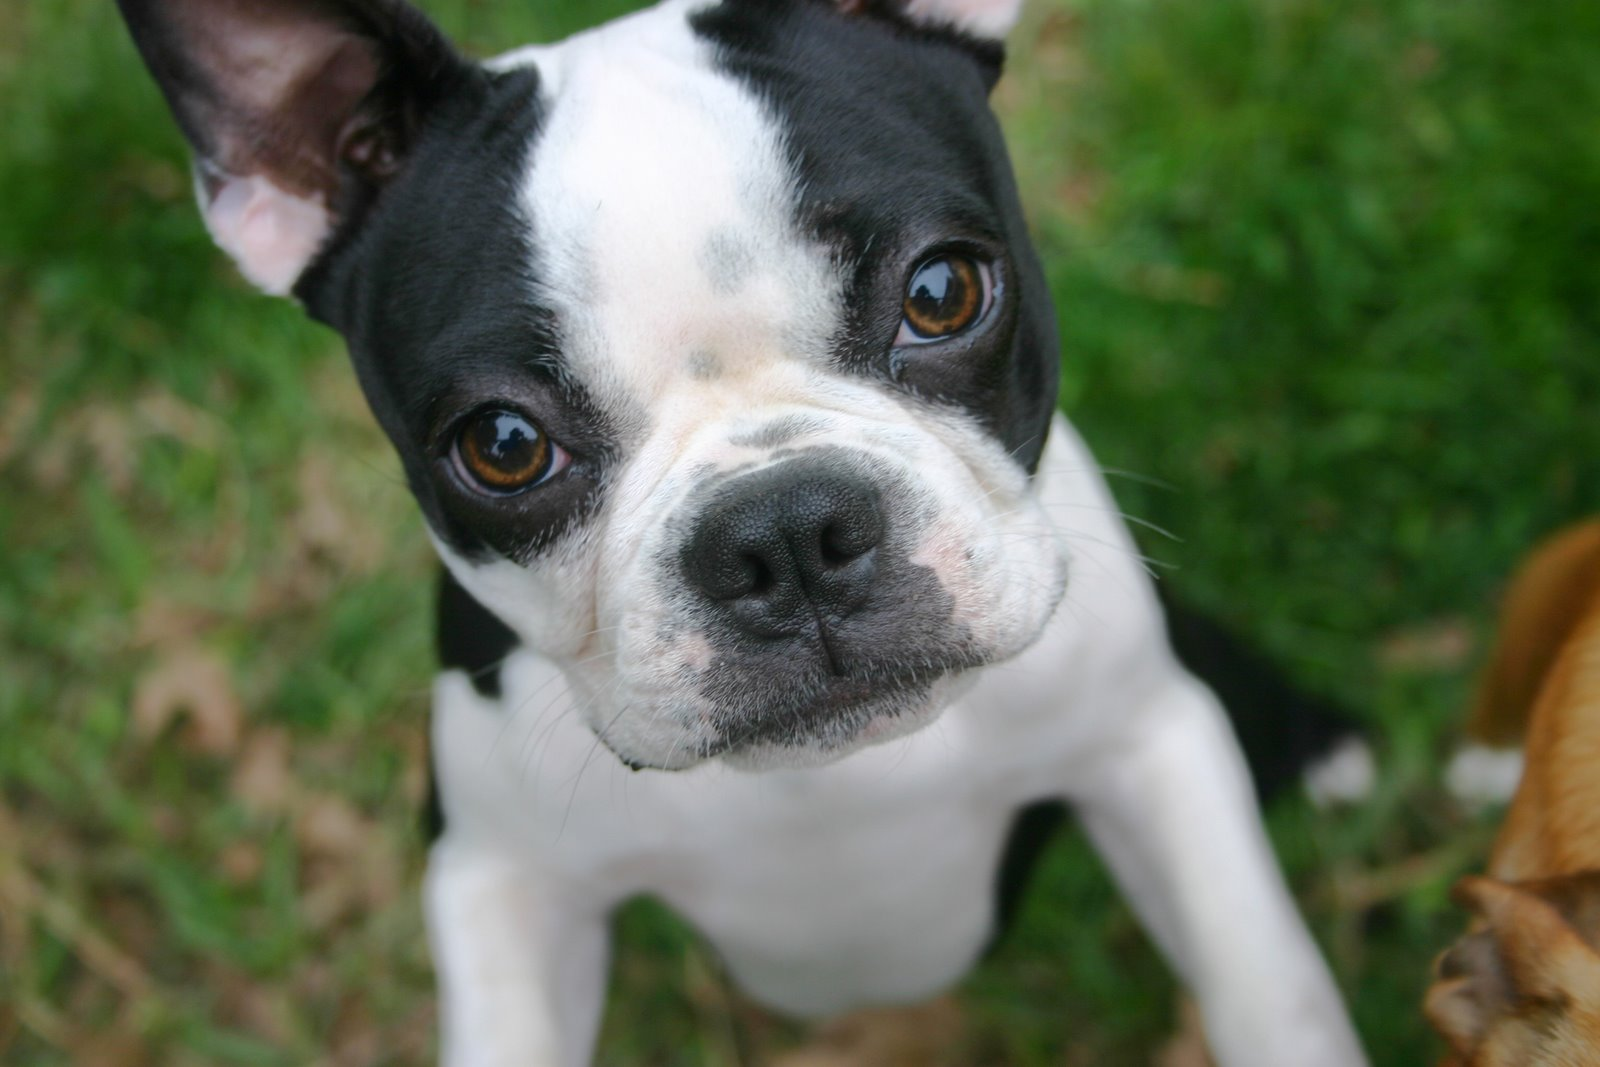 Must Love Dogs Wallpaper : boston terrier puppies - HD Desktop Wallpapers 4k HD